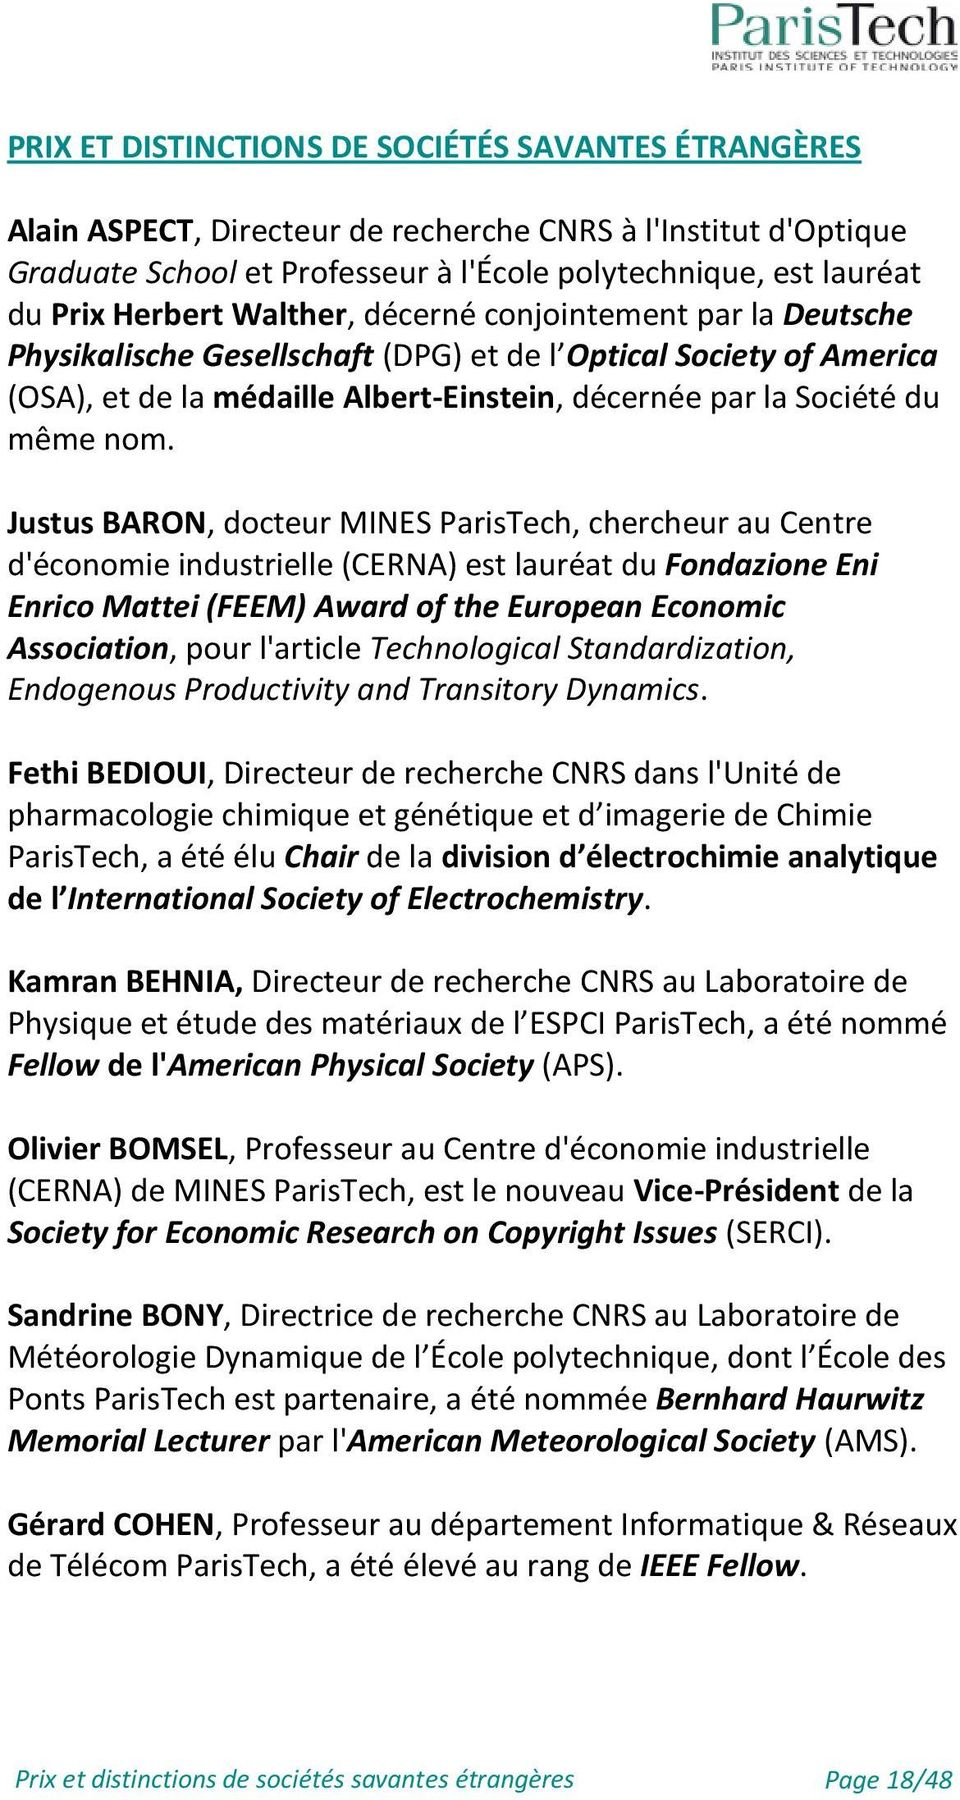 nom. Justus BARON, docteur MINES ParisTech, chercheur au Centre d'économie industrielle (CERNA) est lauréat du Fondazione Eni Enrico Mattei (FEEM) Award of the European Economic Association, pour